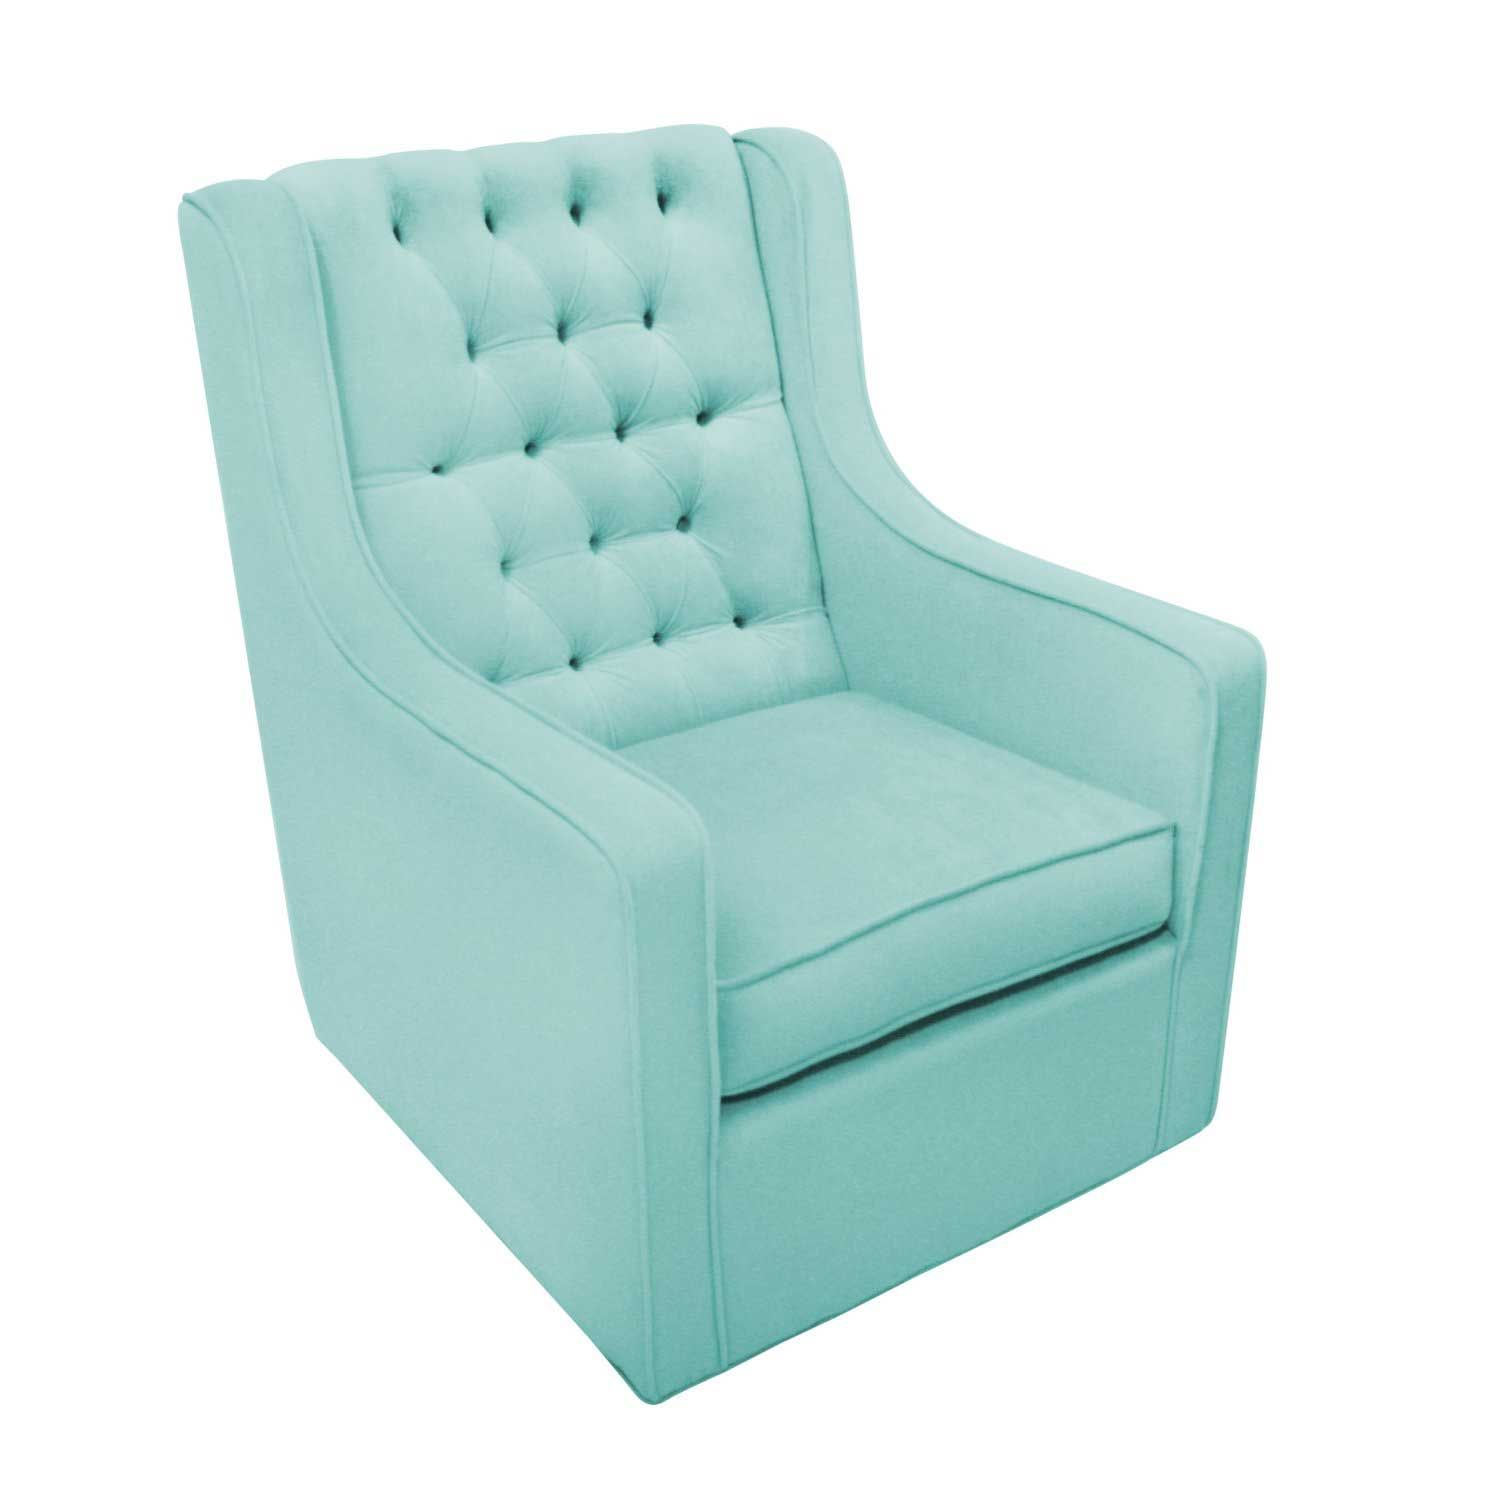 blue nursery chair barrel dining chairs 3 discount rocking with durable wood and consumer reviews 27 inch aqua absolutely adore this